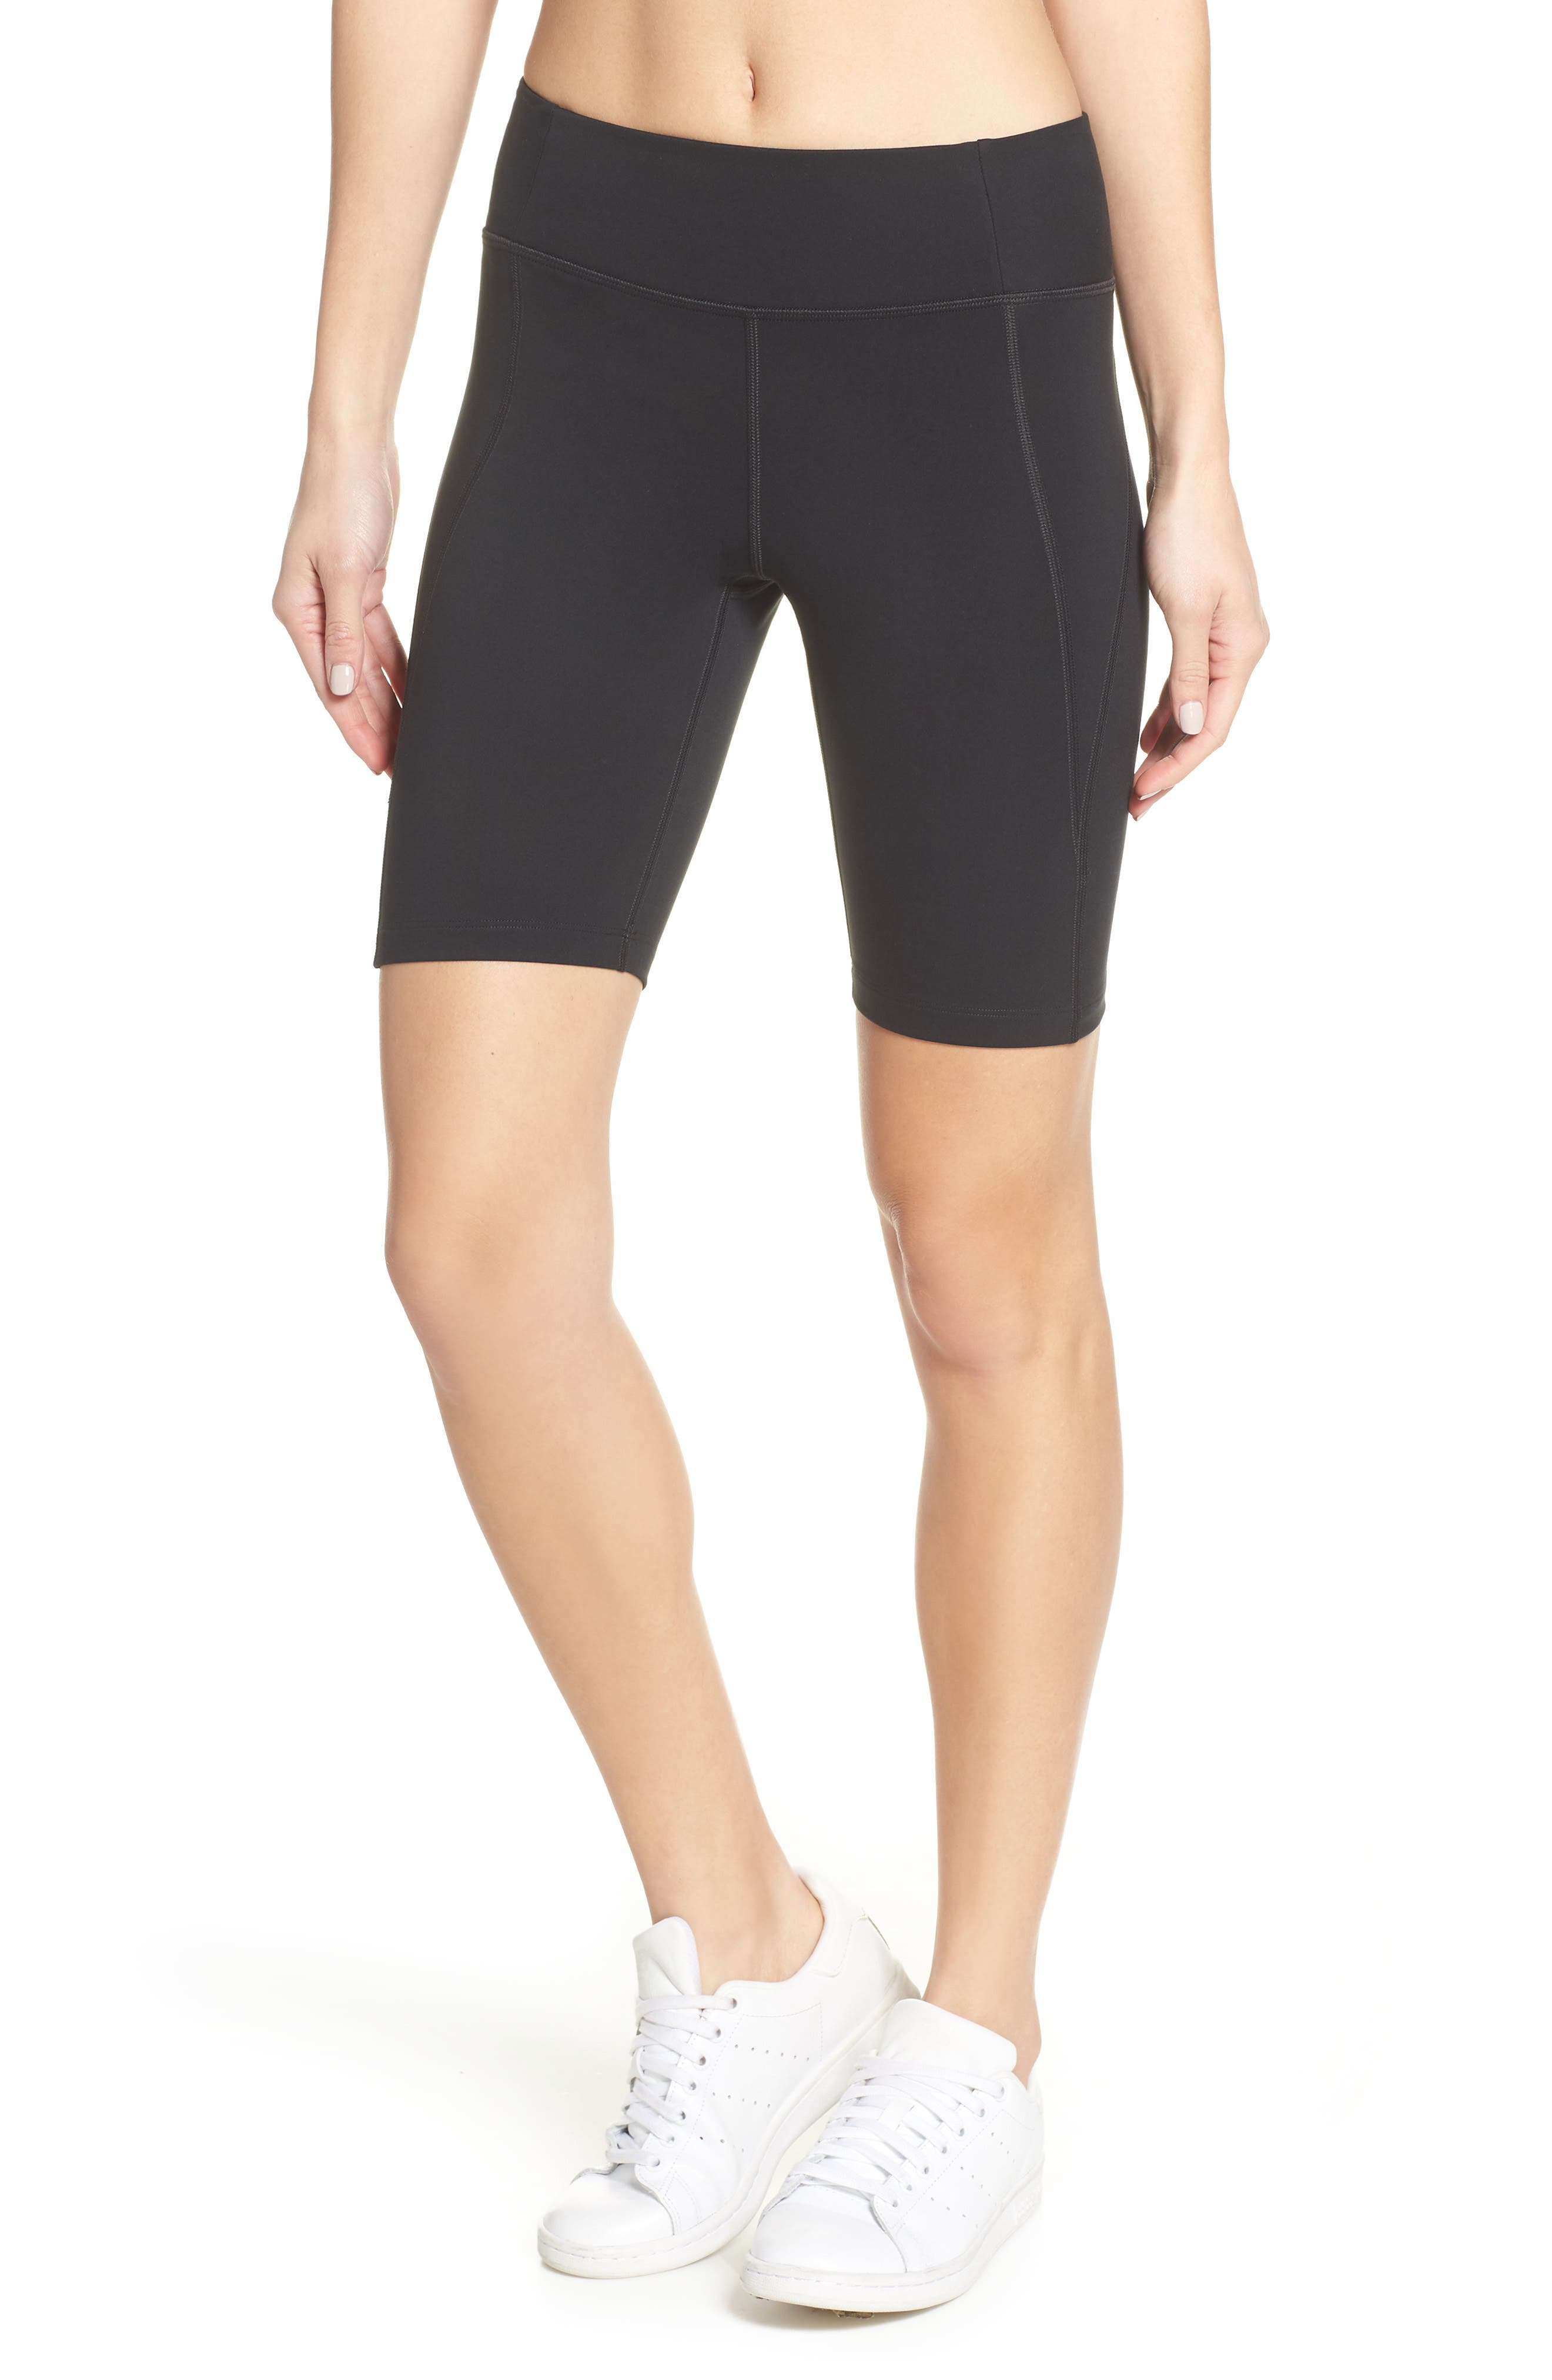 Girlfriend Collective High Waist Bike Shorts, Black